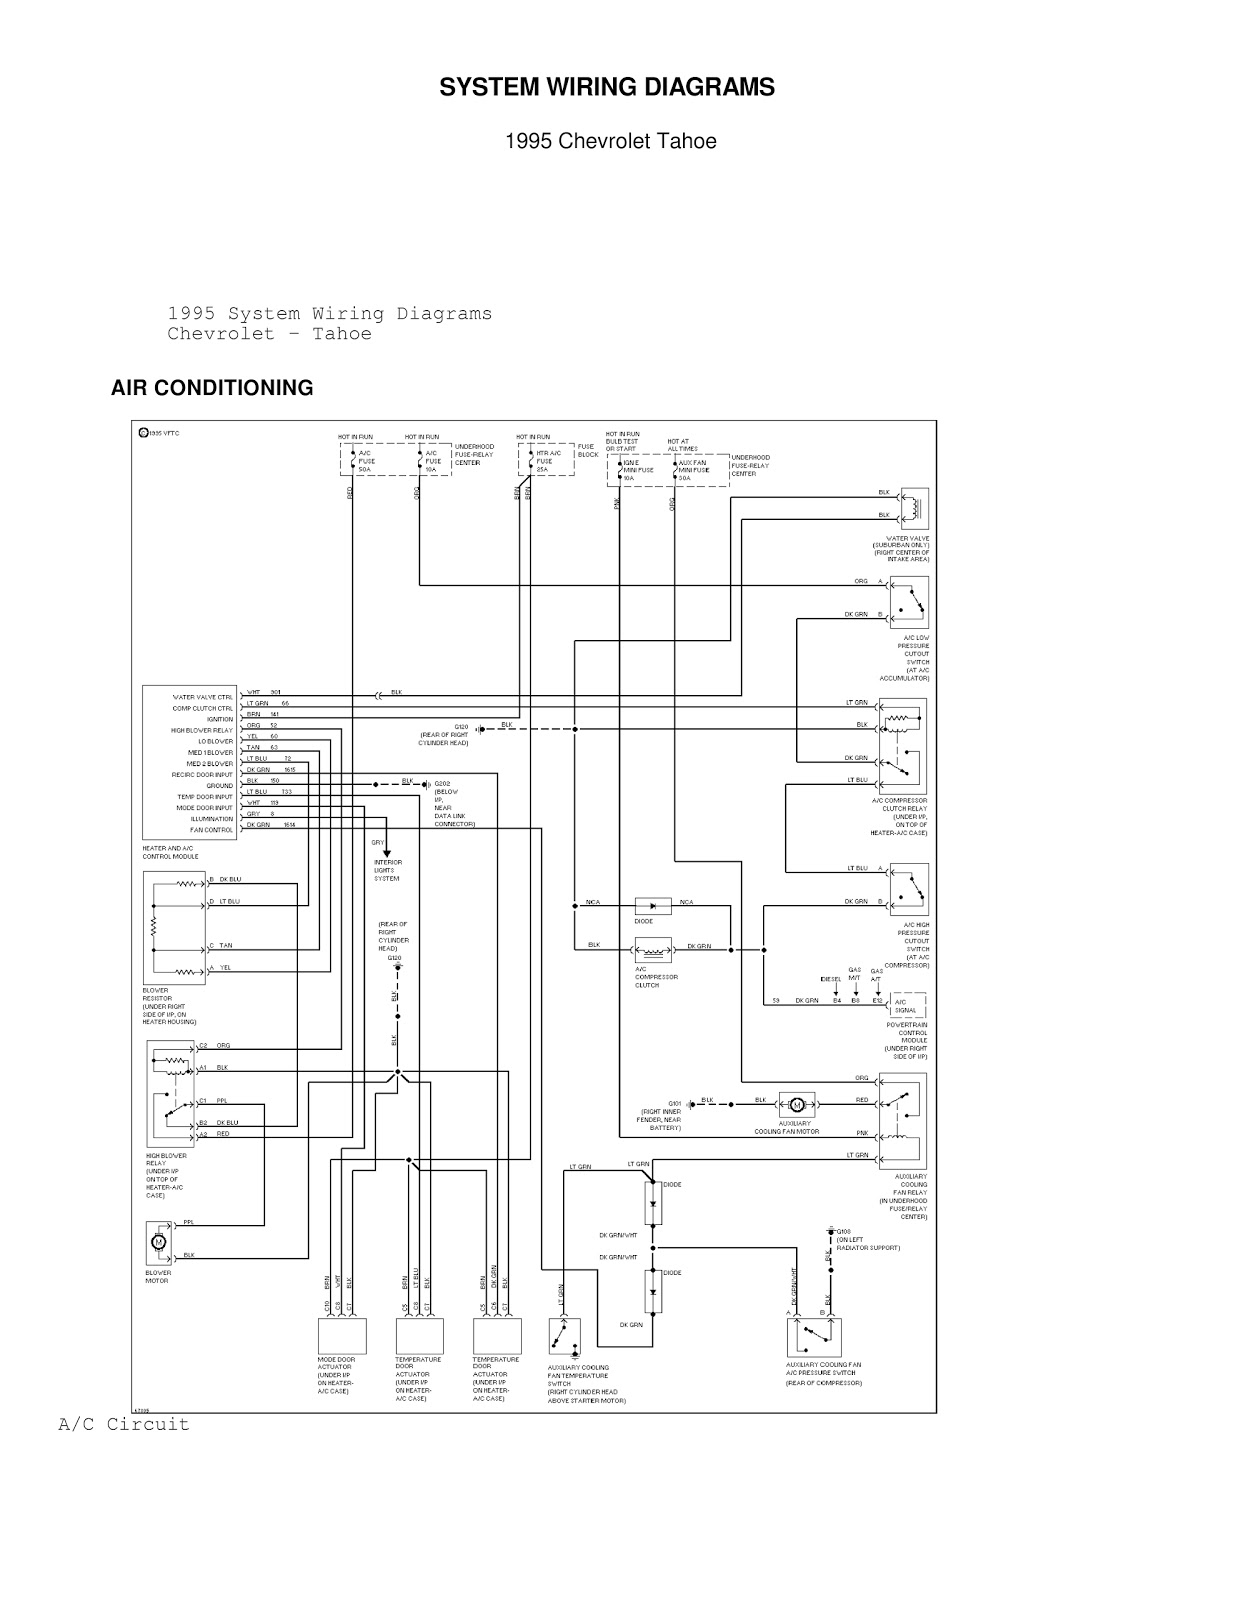 96 Chevy Tahoe Ac And Heater Wiring Diagram